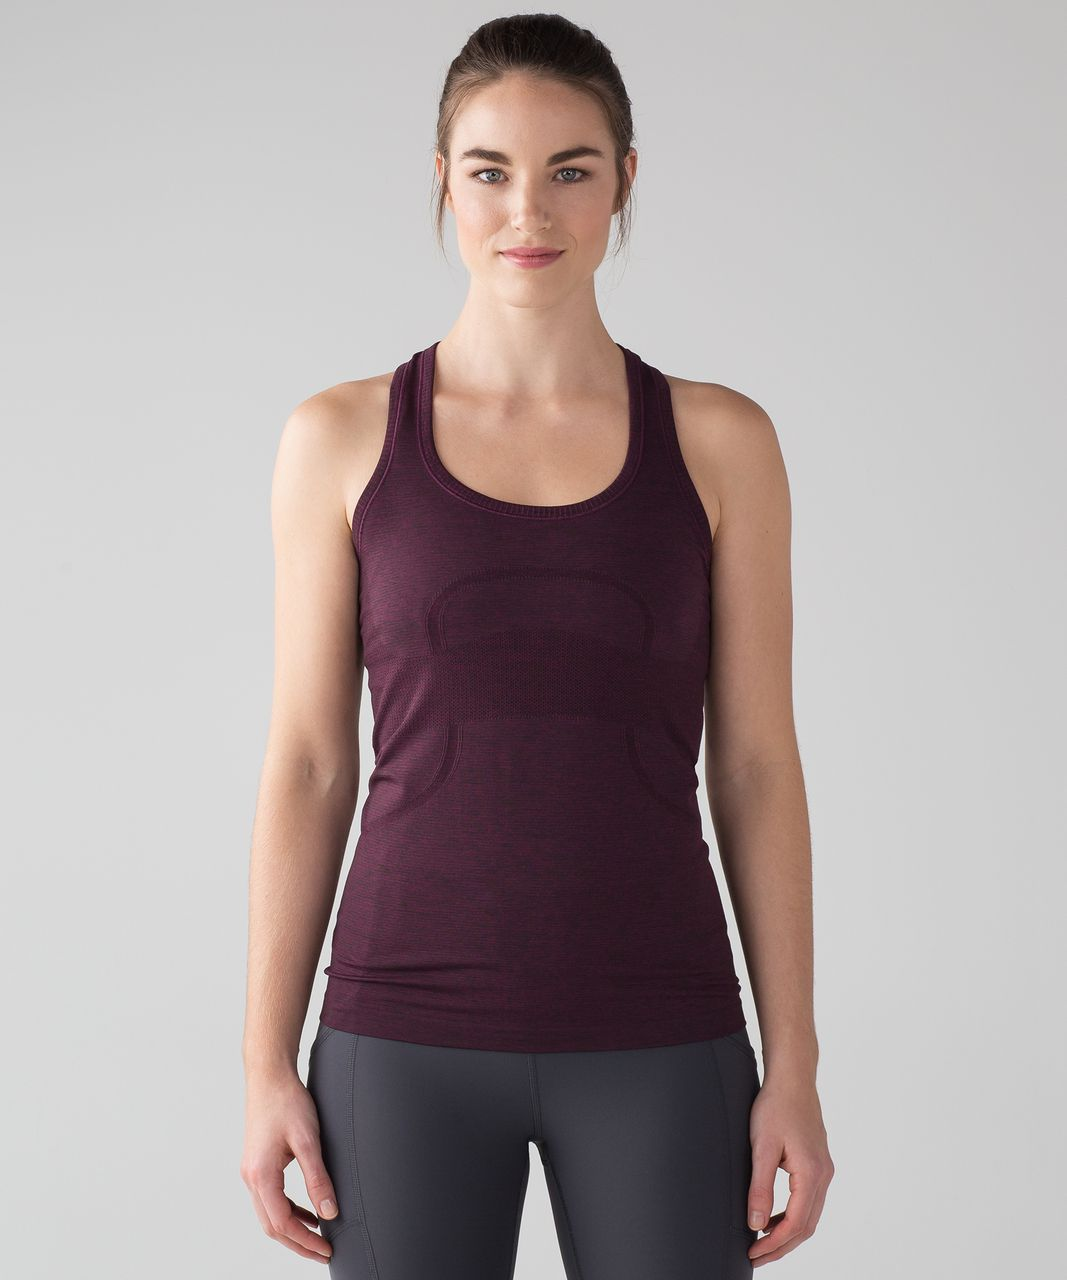 823ccbf156e21 Lululemon Swiftly Tech Racerback - Marvel   Black - lulu fanatics